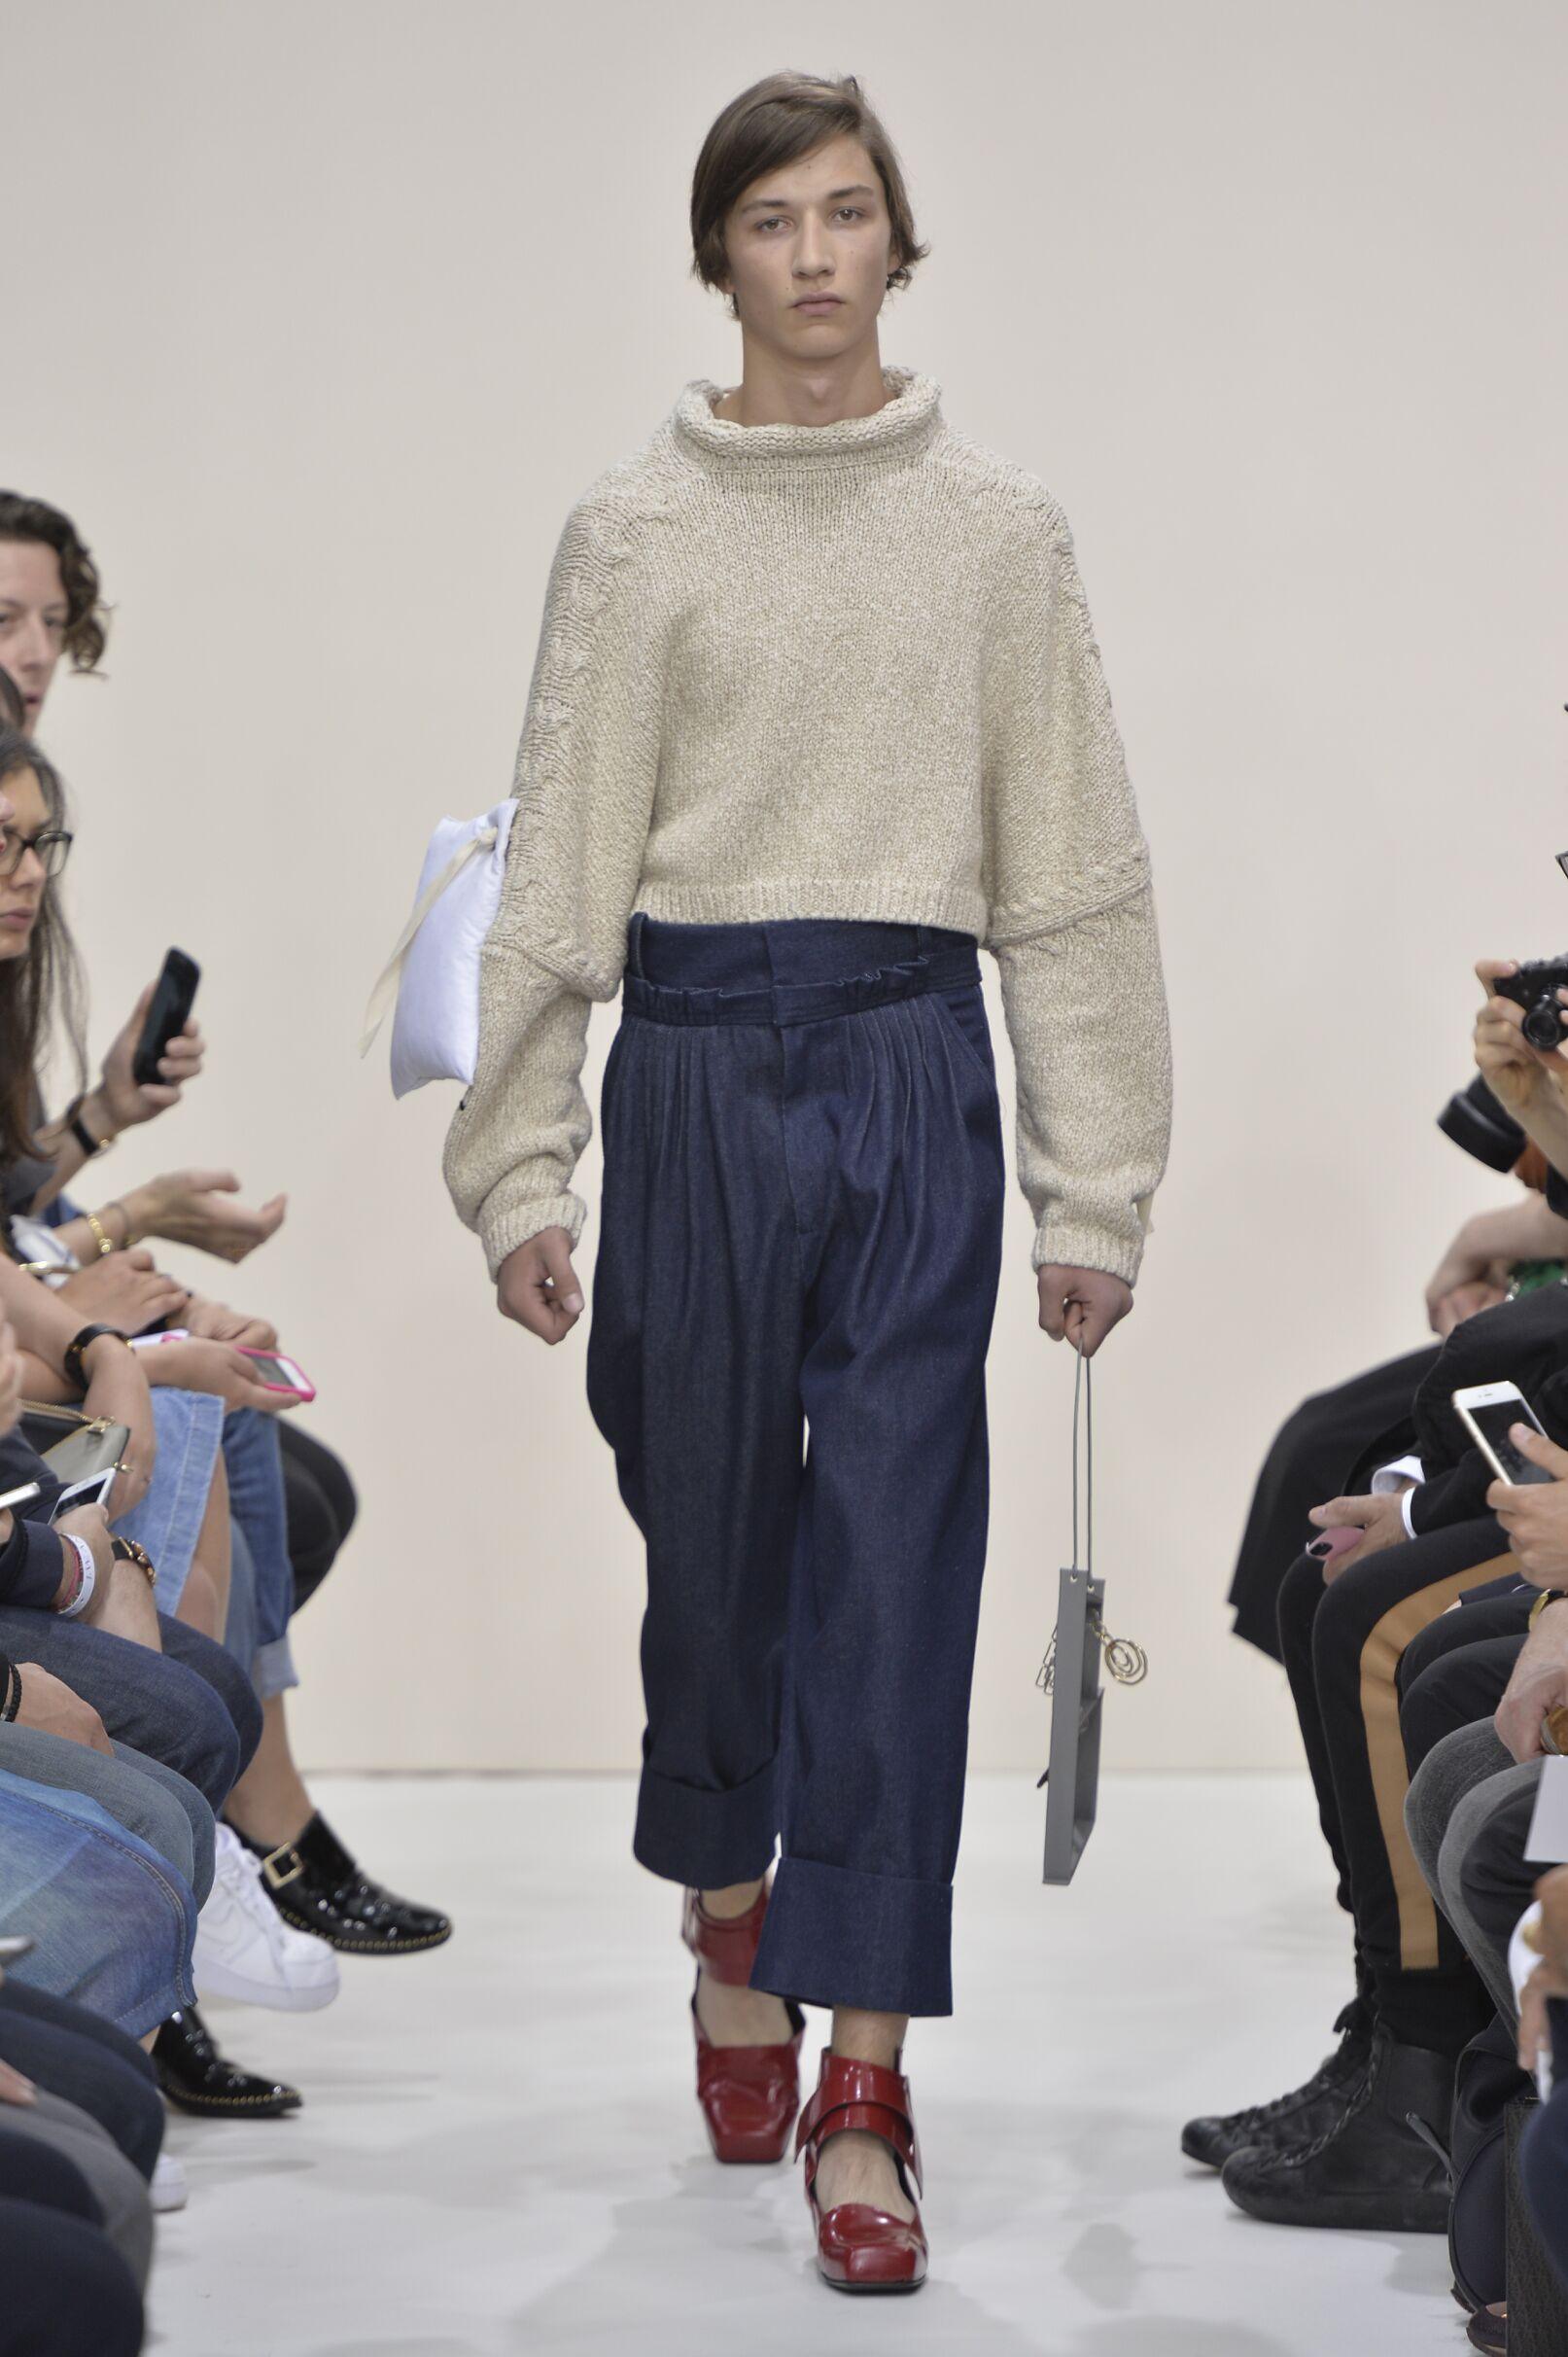 Spring 2016 Men Fashion Show J.W. Anderson Collection